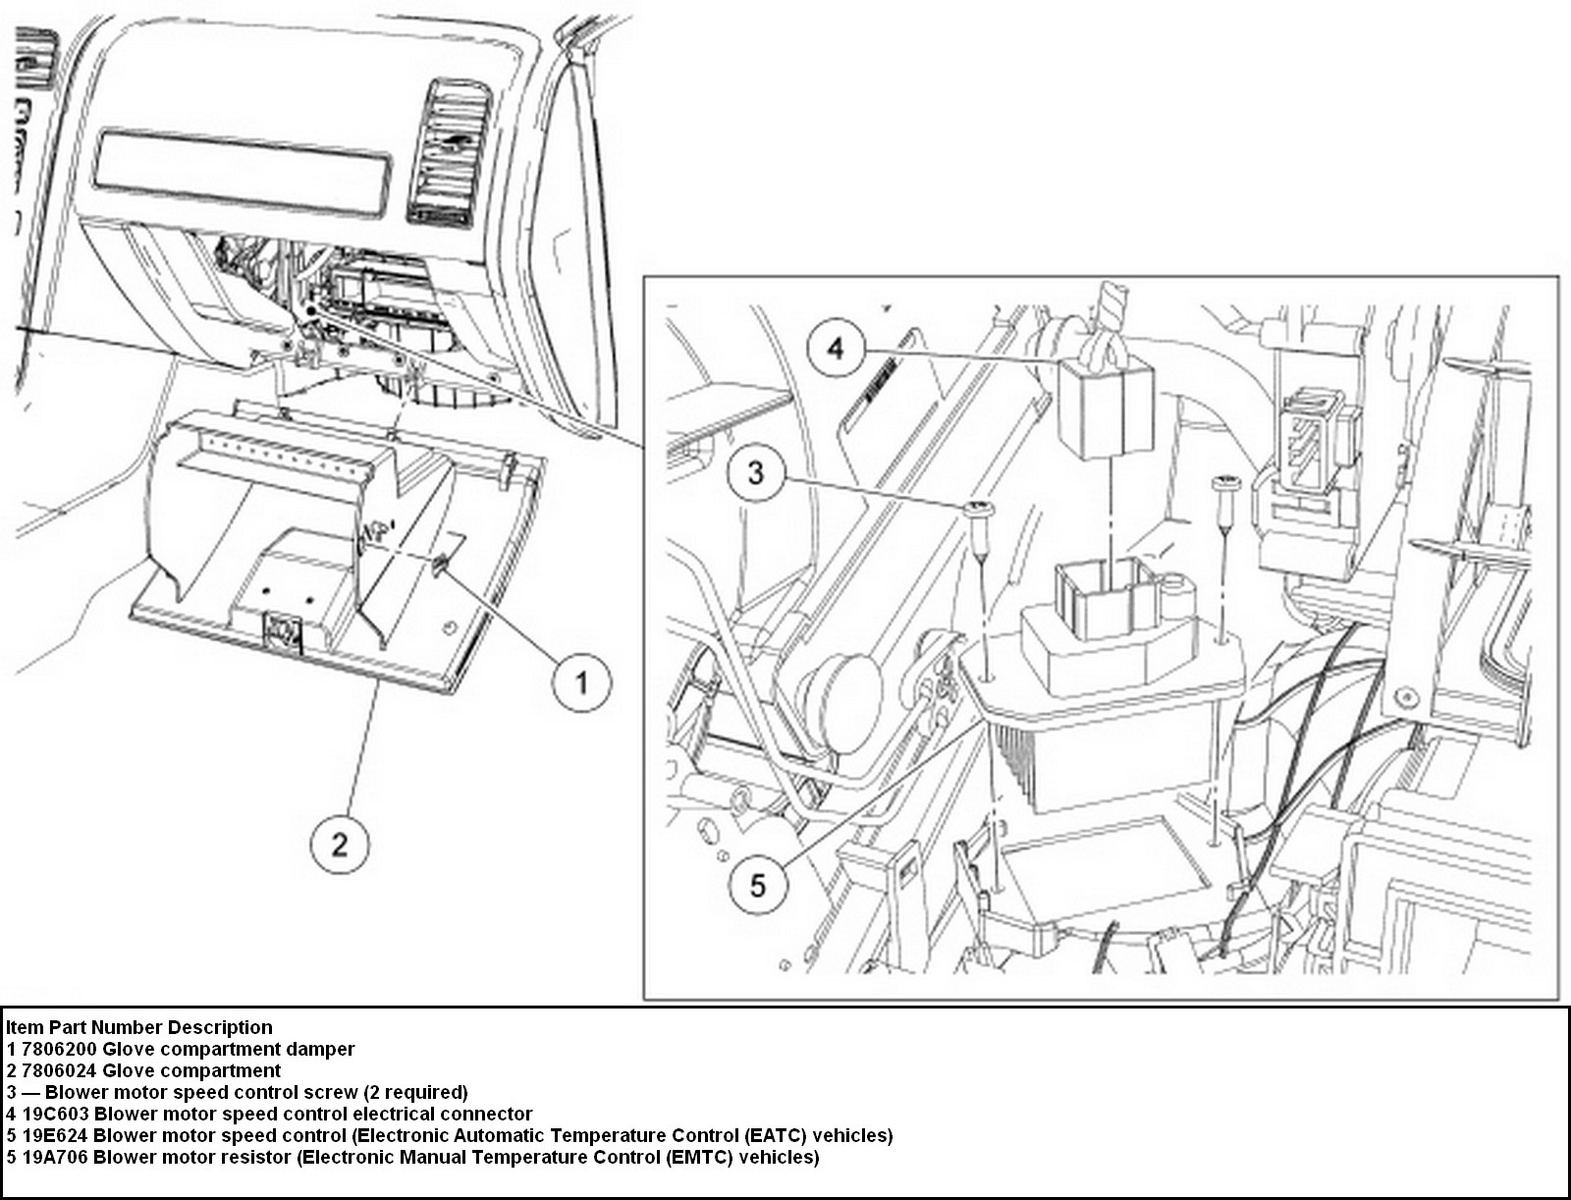 2009 Ford F550 Fuse Box Wiring Library Escape Diagram Edge Questions How Do You Remove And Replace Install A Blower Rh Cargurus Com